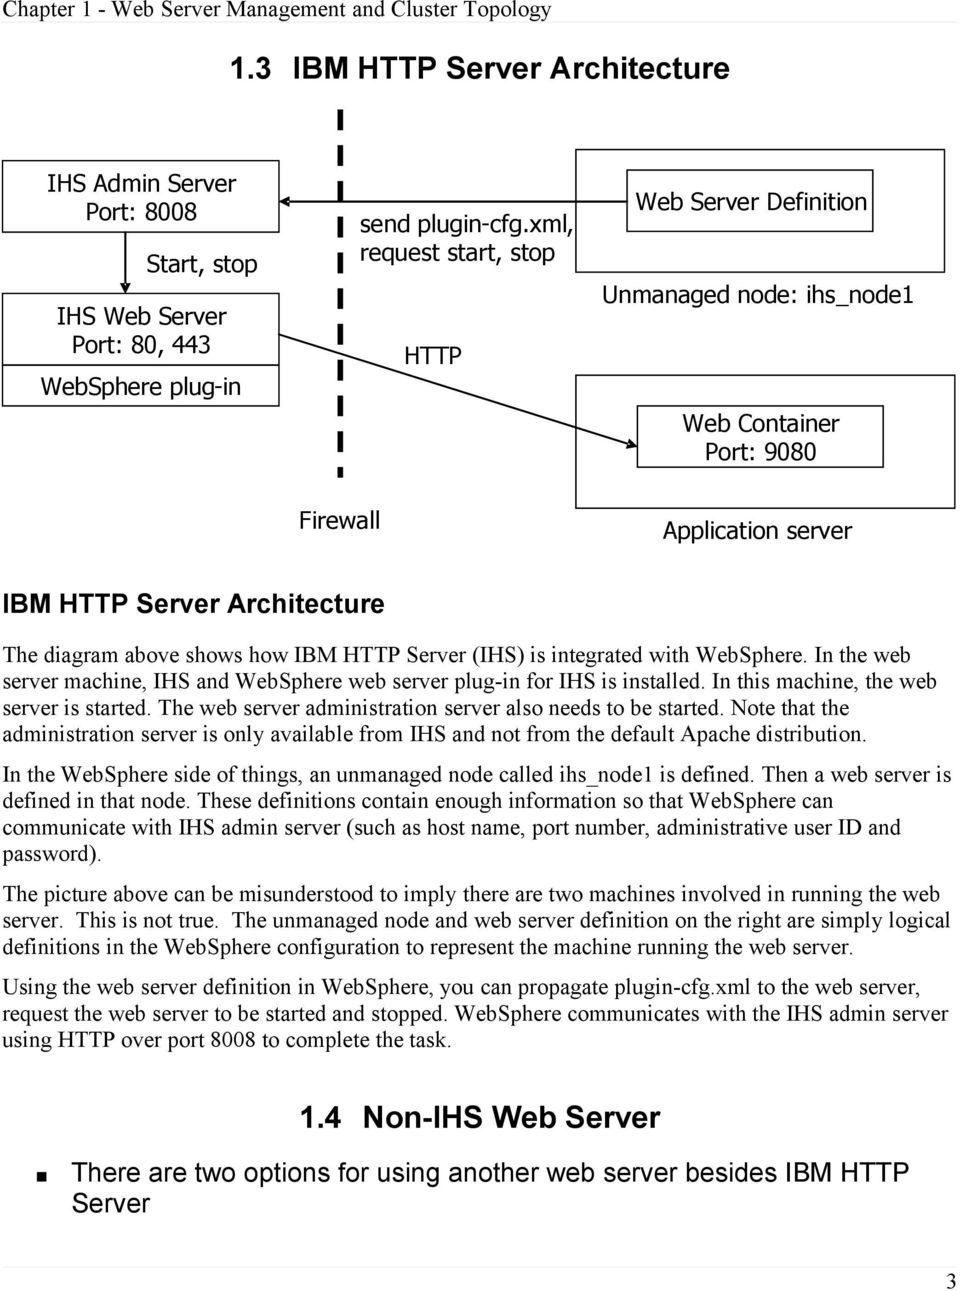 Server (IHS) is integrated with WebSphere. In the web server machine, IHS and WebSphere web server plug-in for IHS is installed. In this machine, the web server is started.